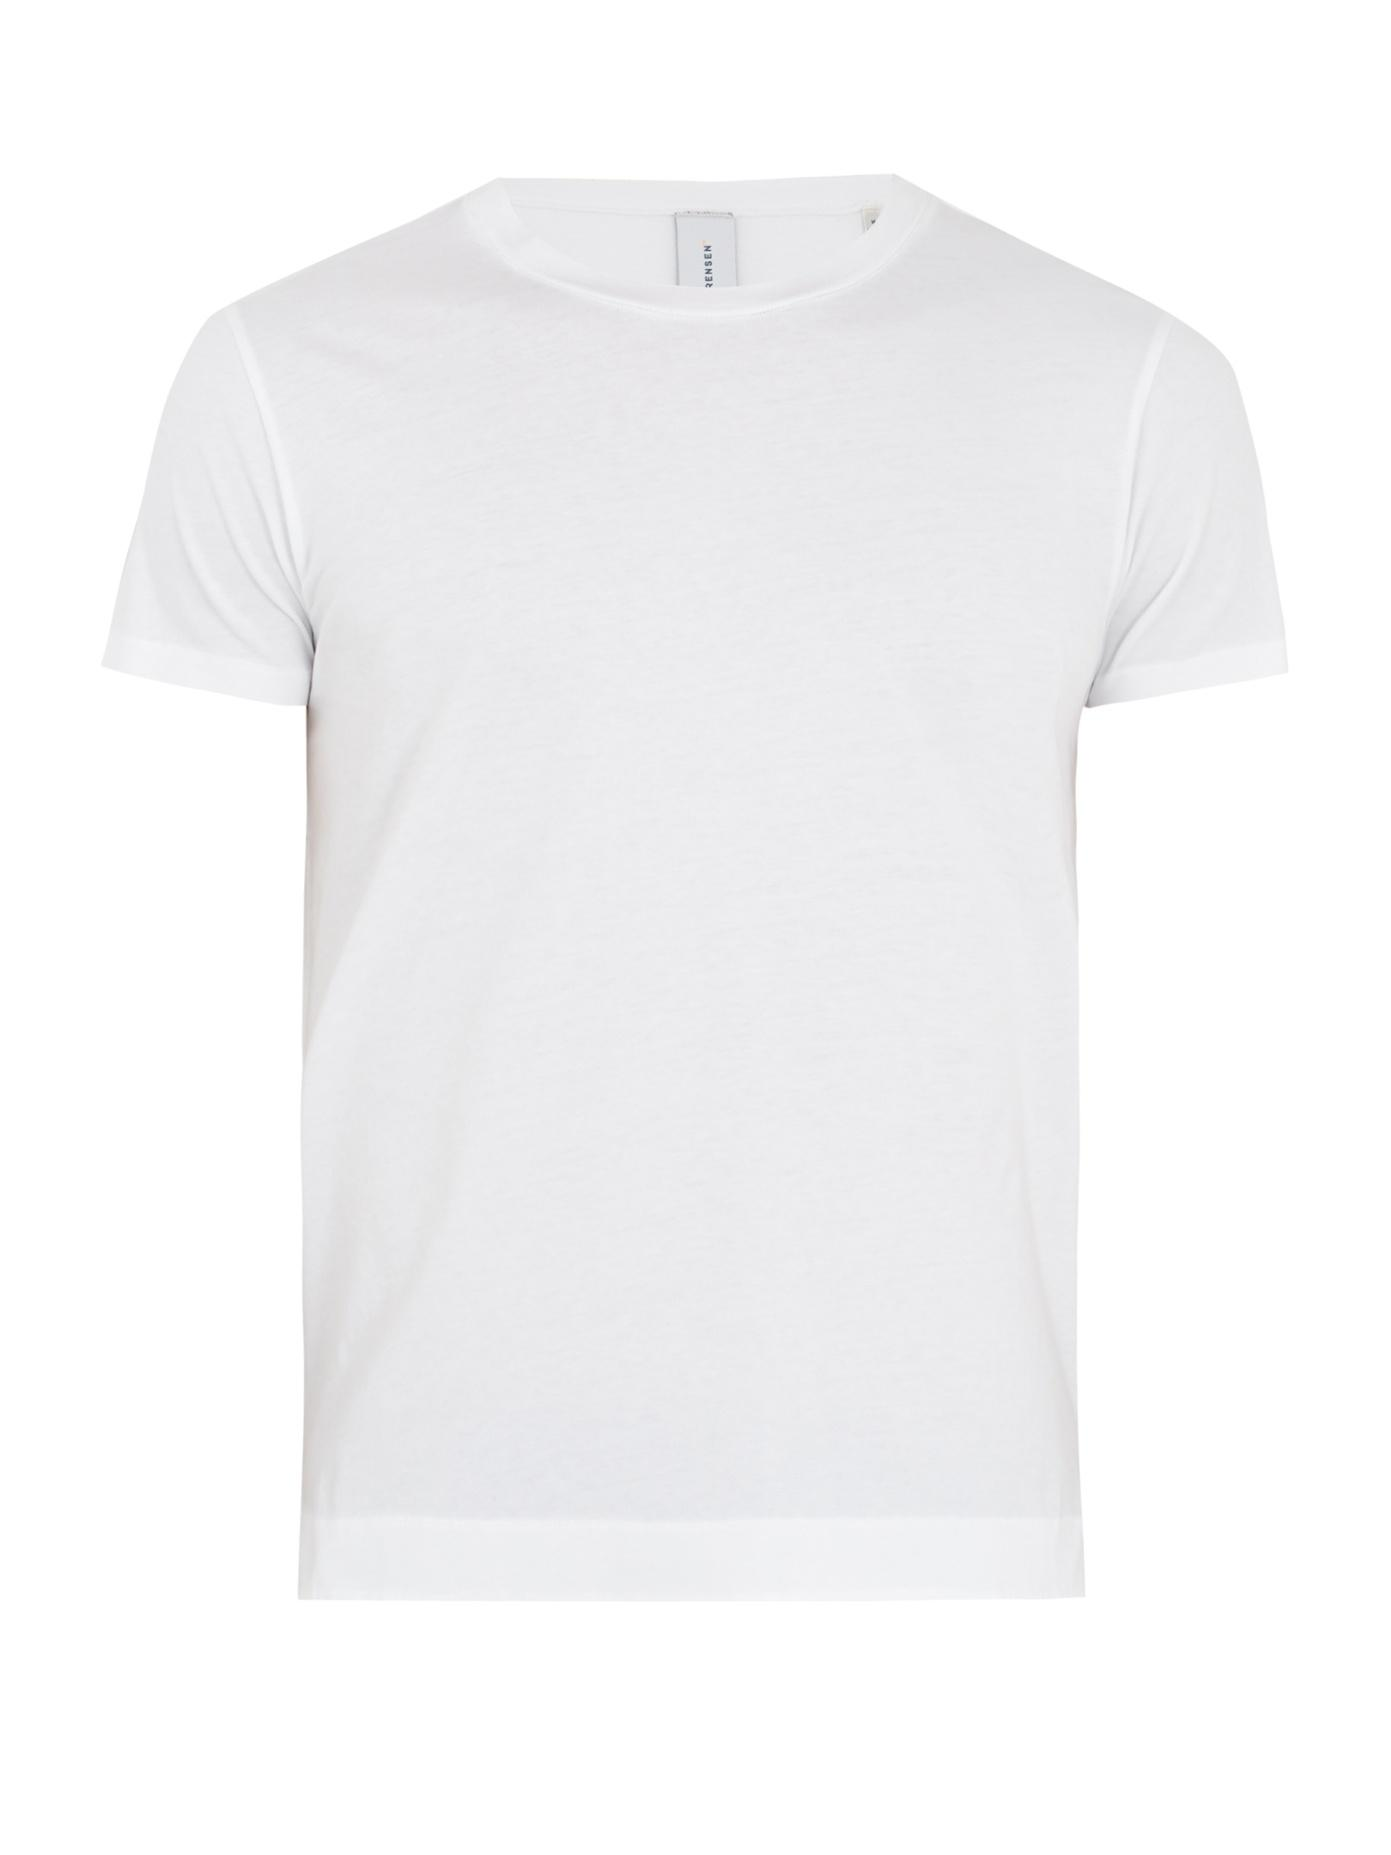 S0rensen Driver Crew-neck Cotton-jersey T-shirt In White